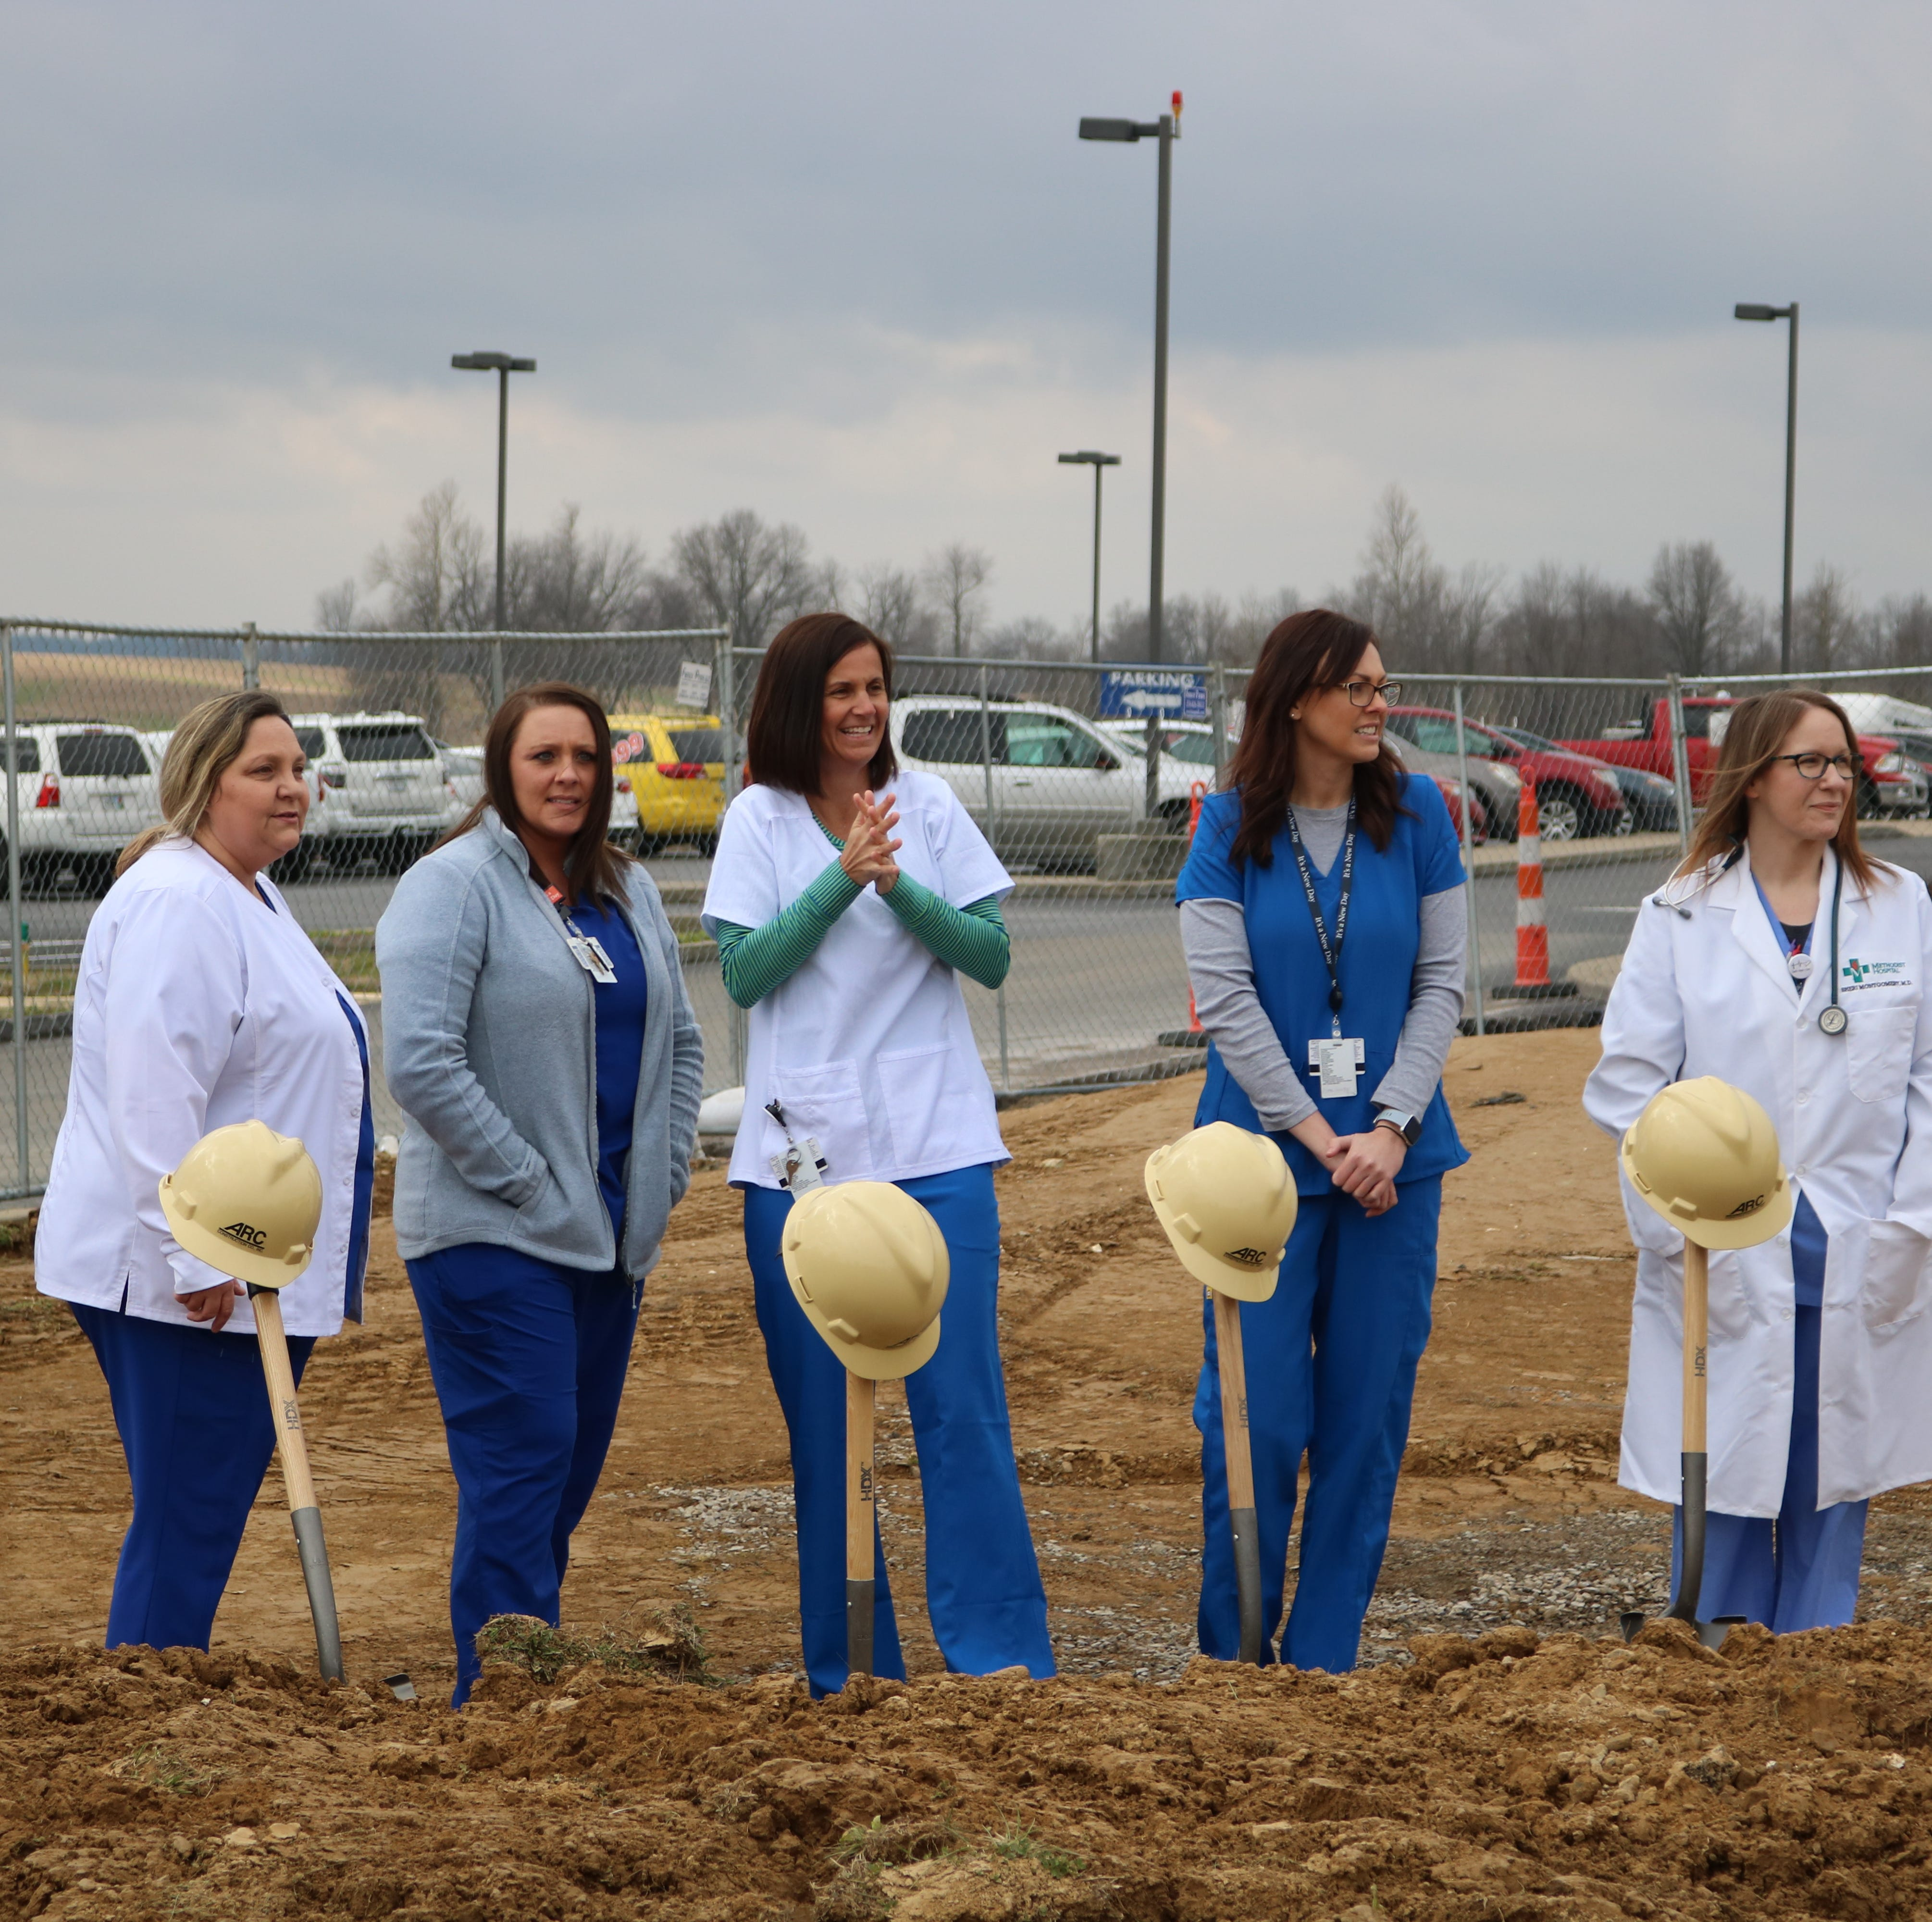 Union County Methodist Hospital breaks ground for new emergency department